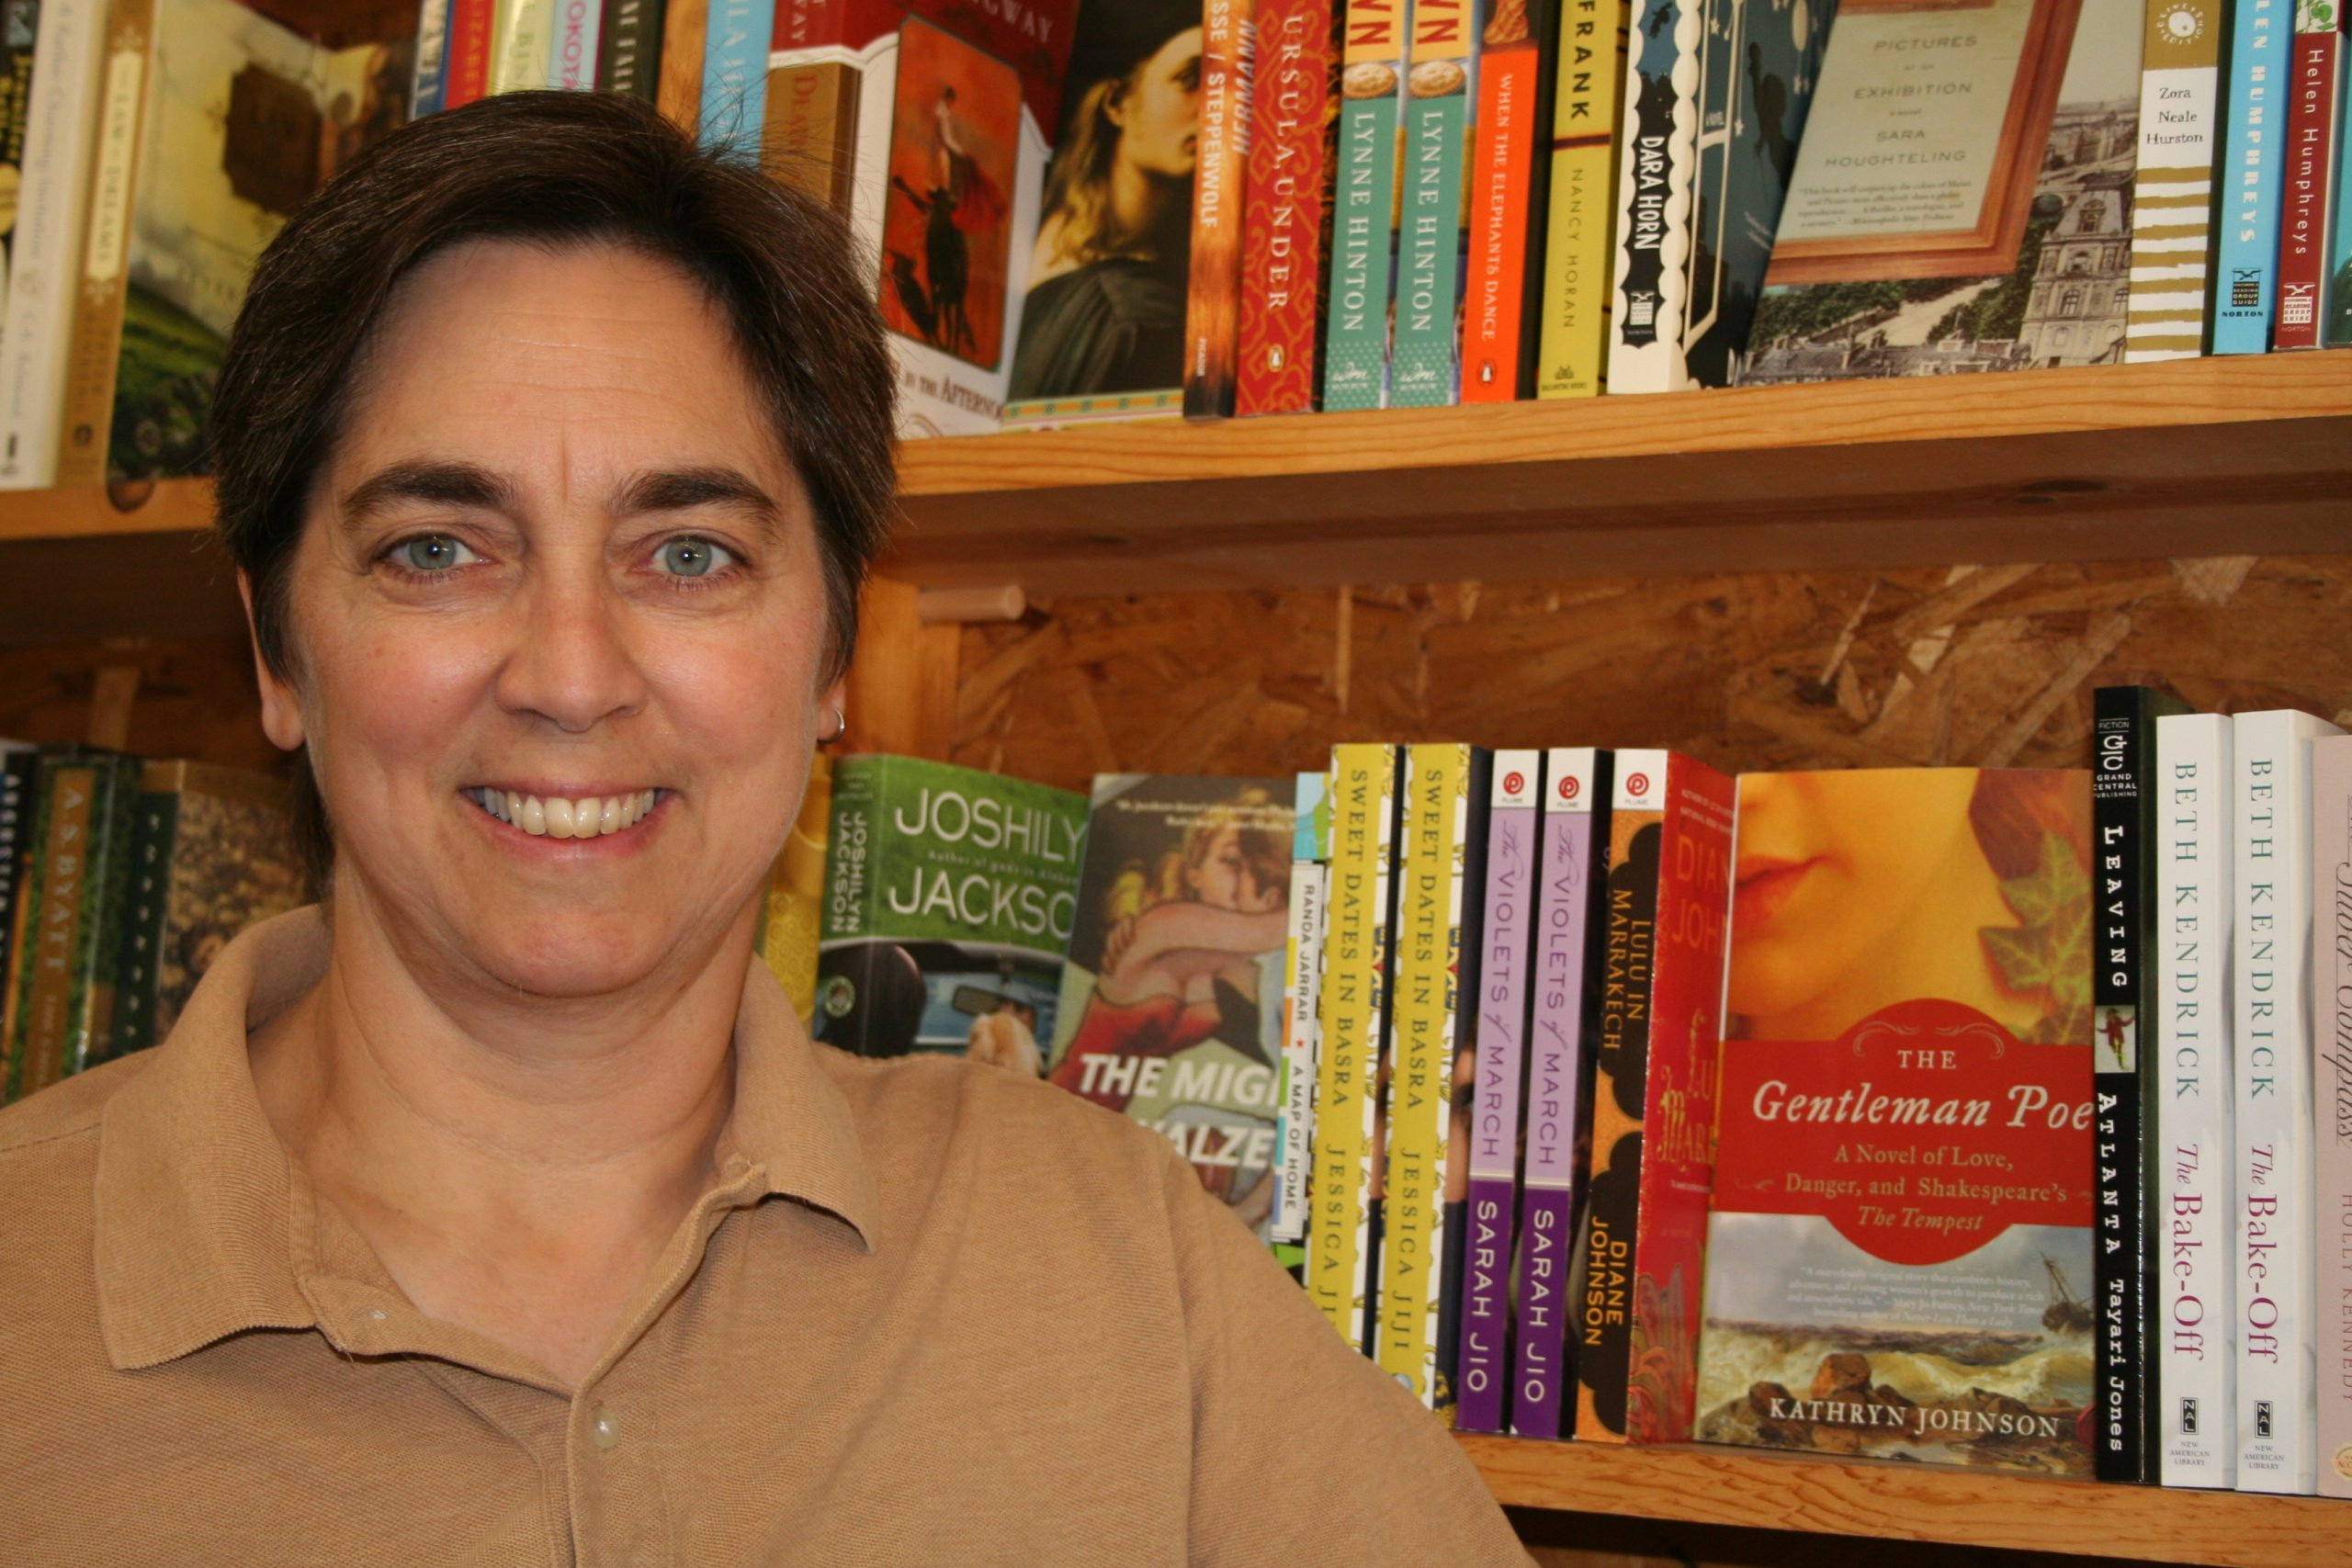 A woman with short brown hair stands in front of a shelf of books.